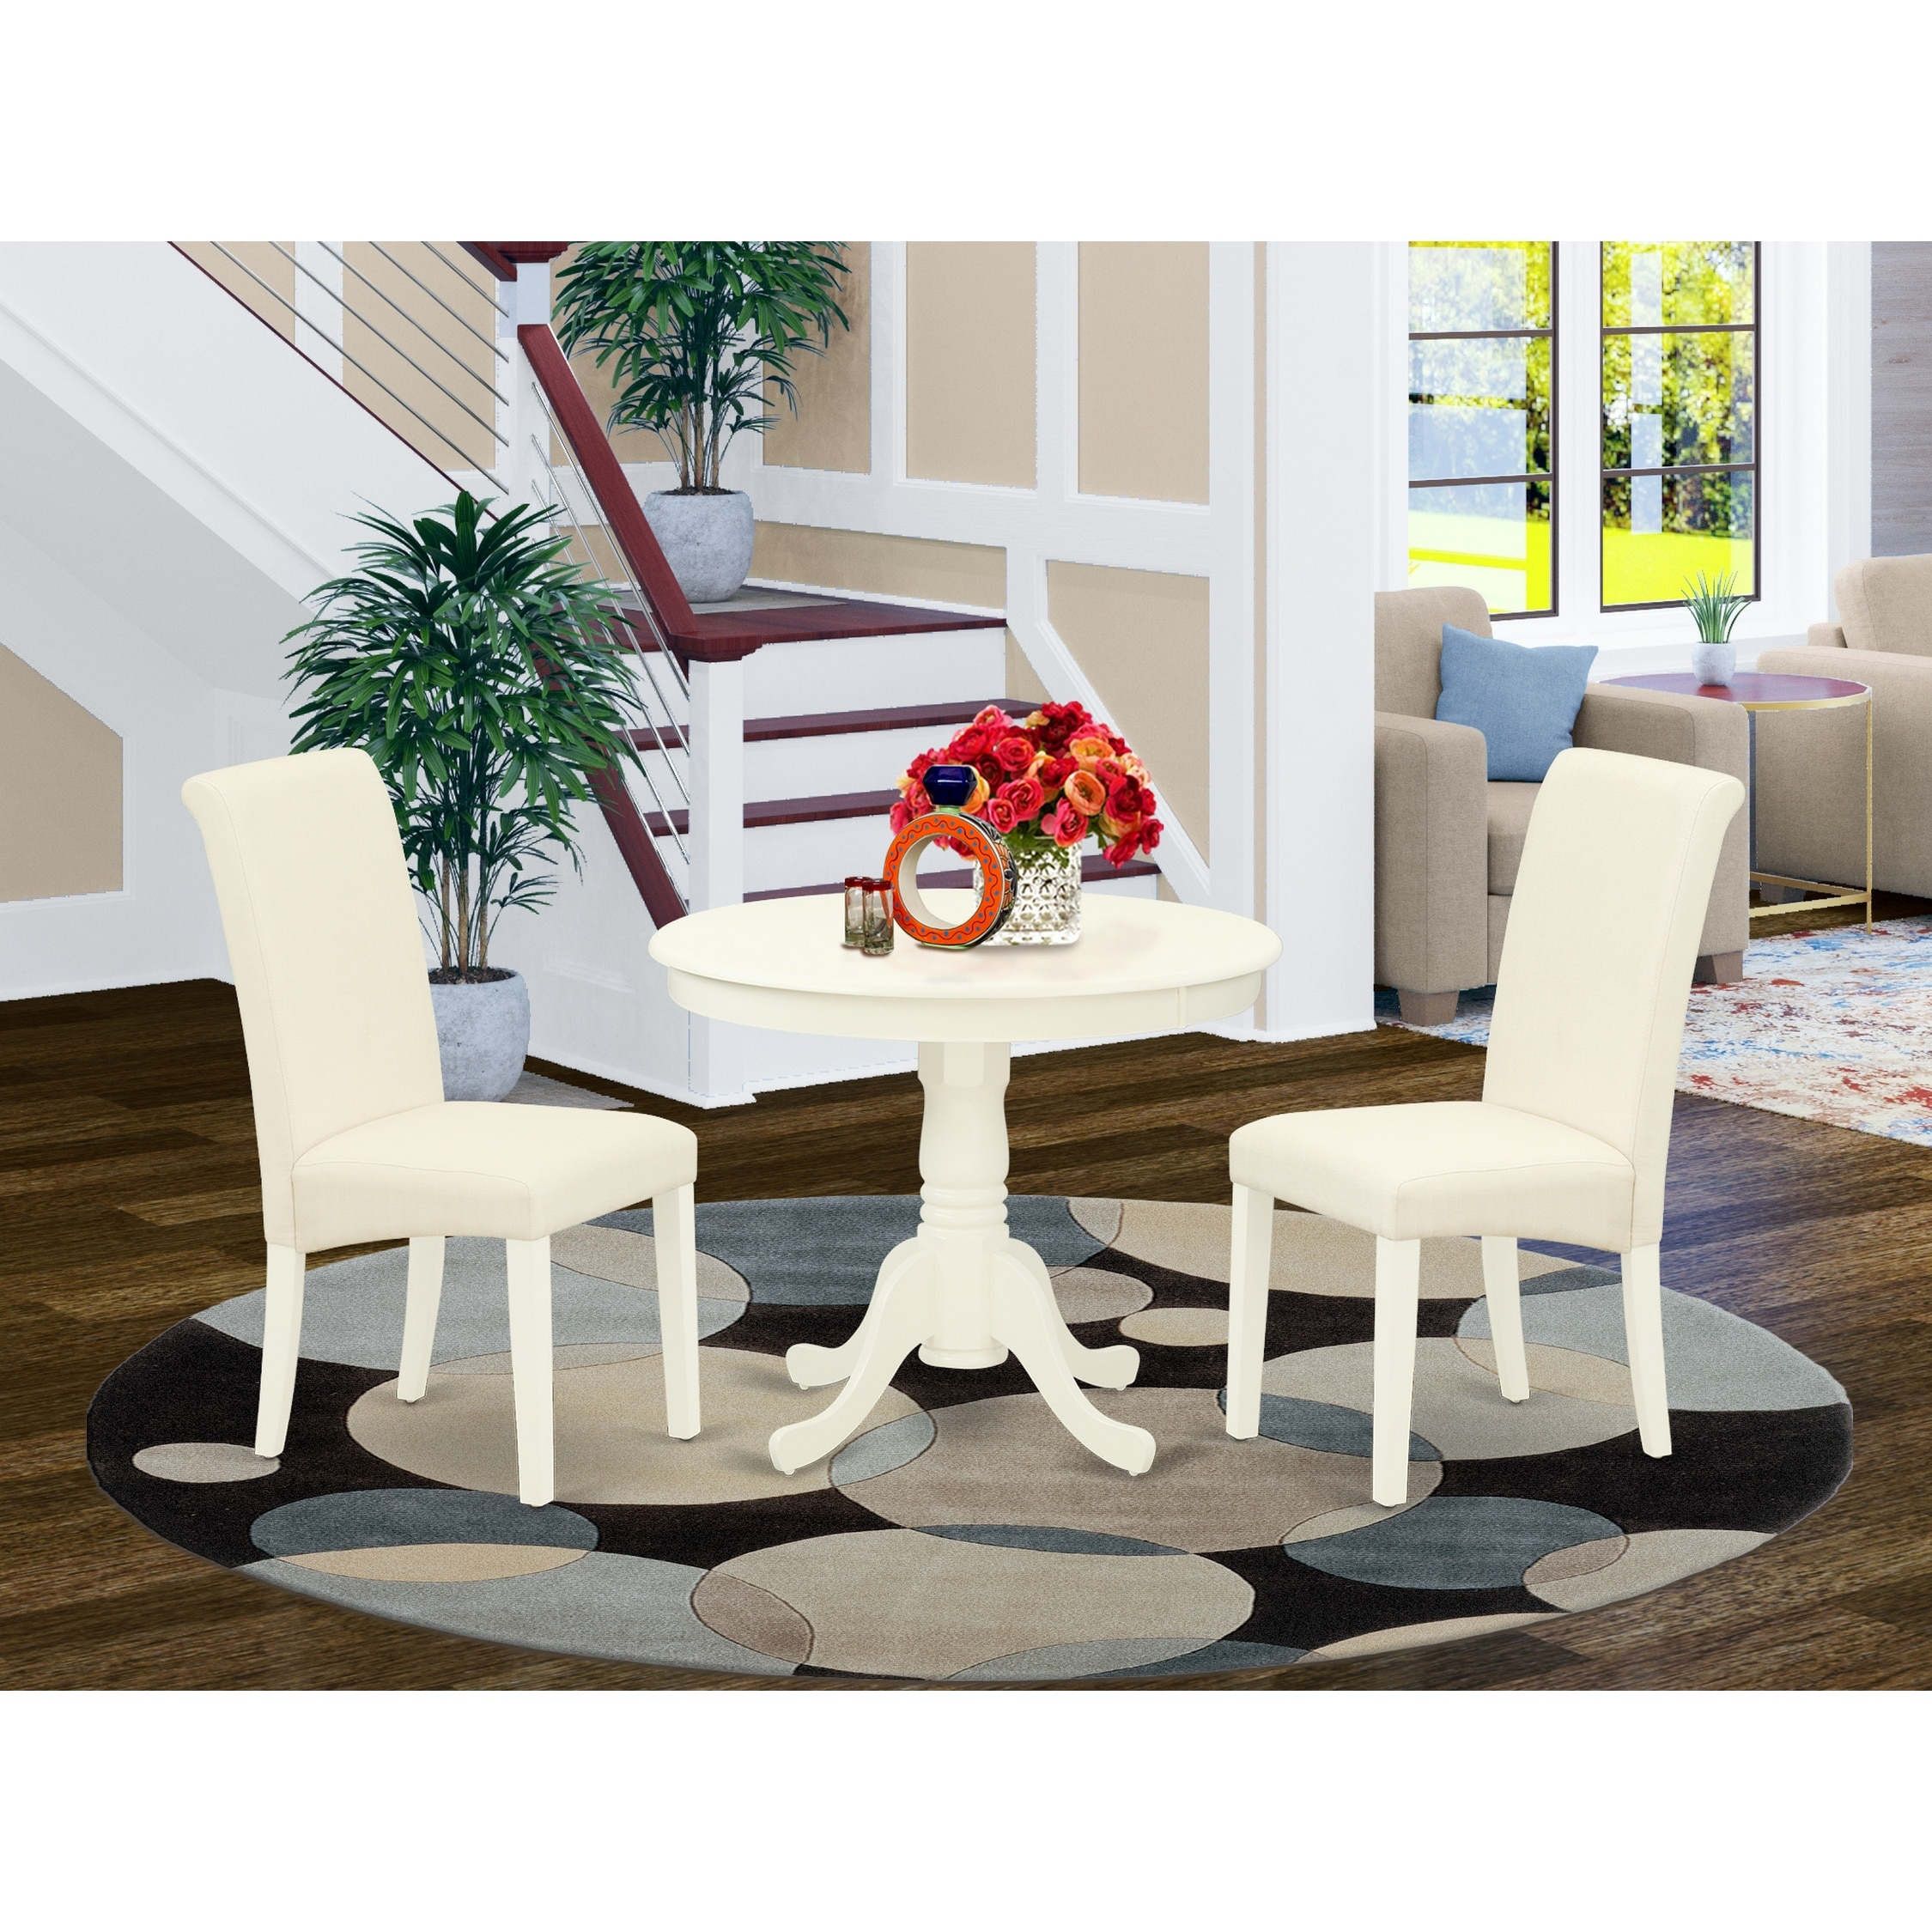 Round Small Table And Parson Chairs In Cream Linen Fabric Number Of Chairs Option Overstock 29820856